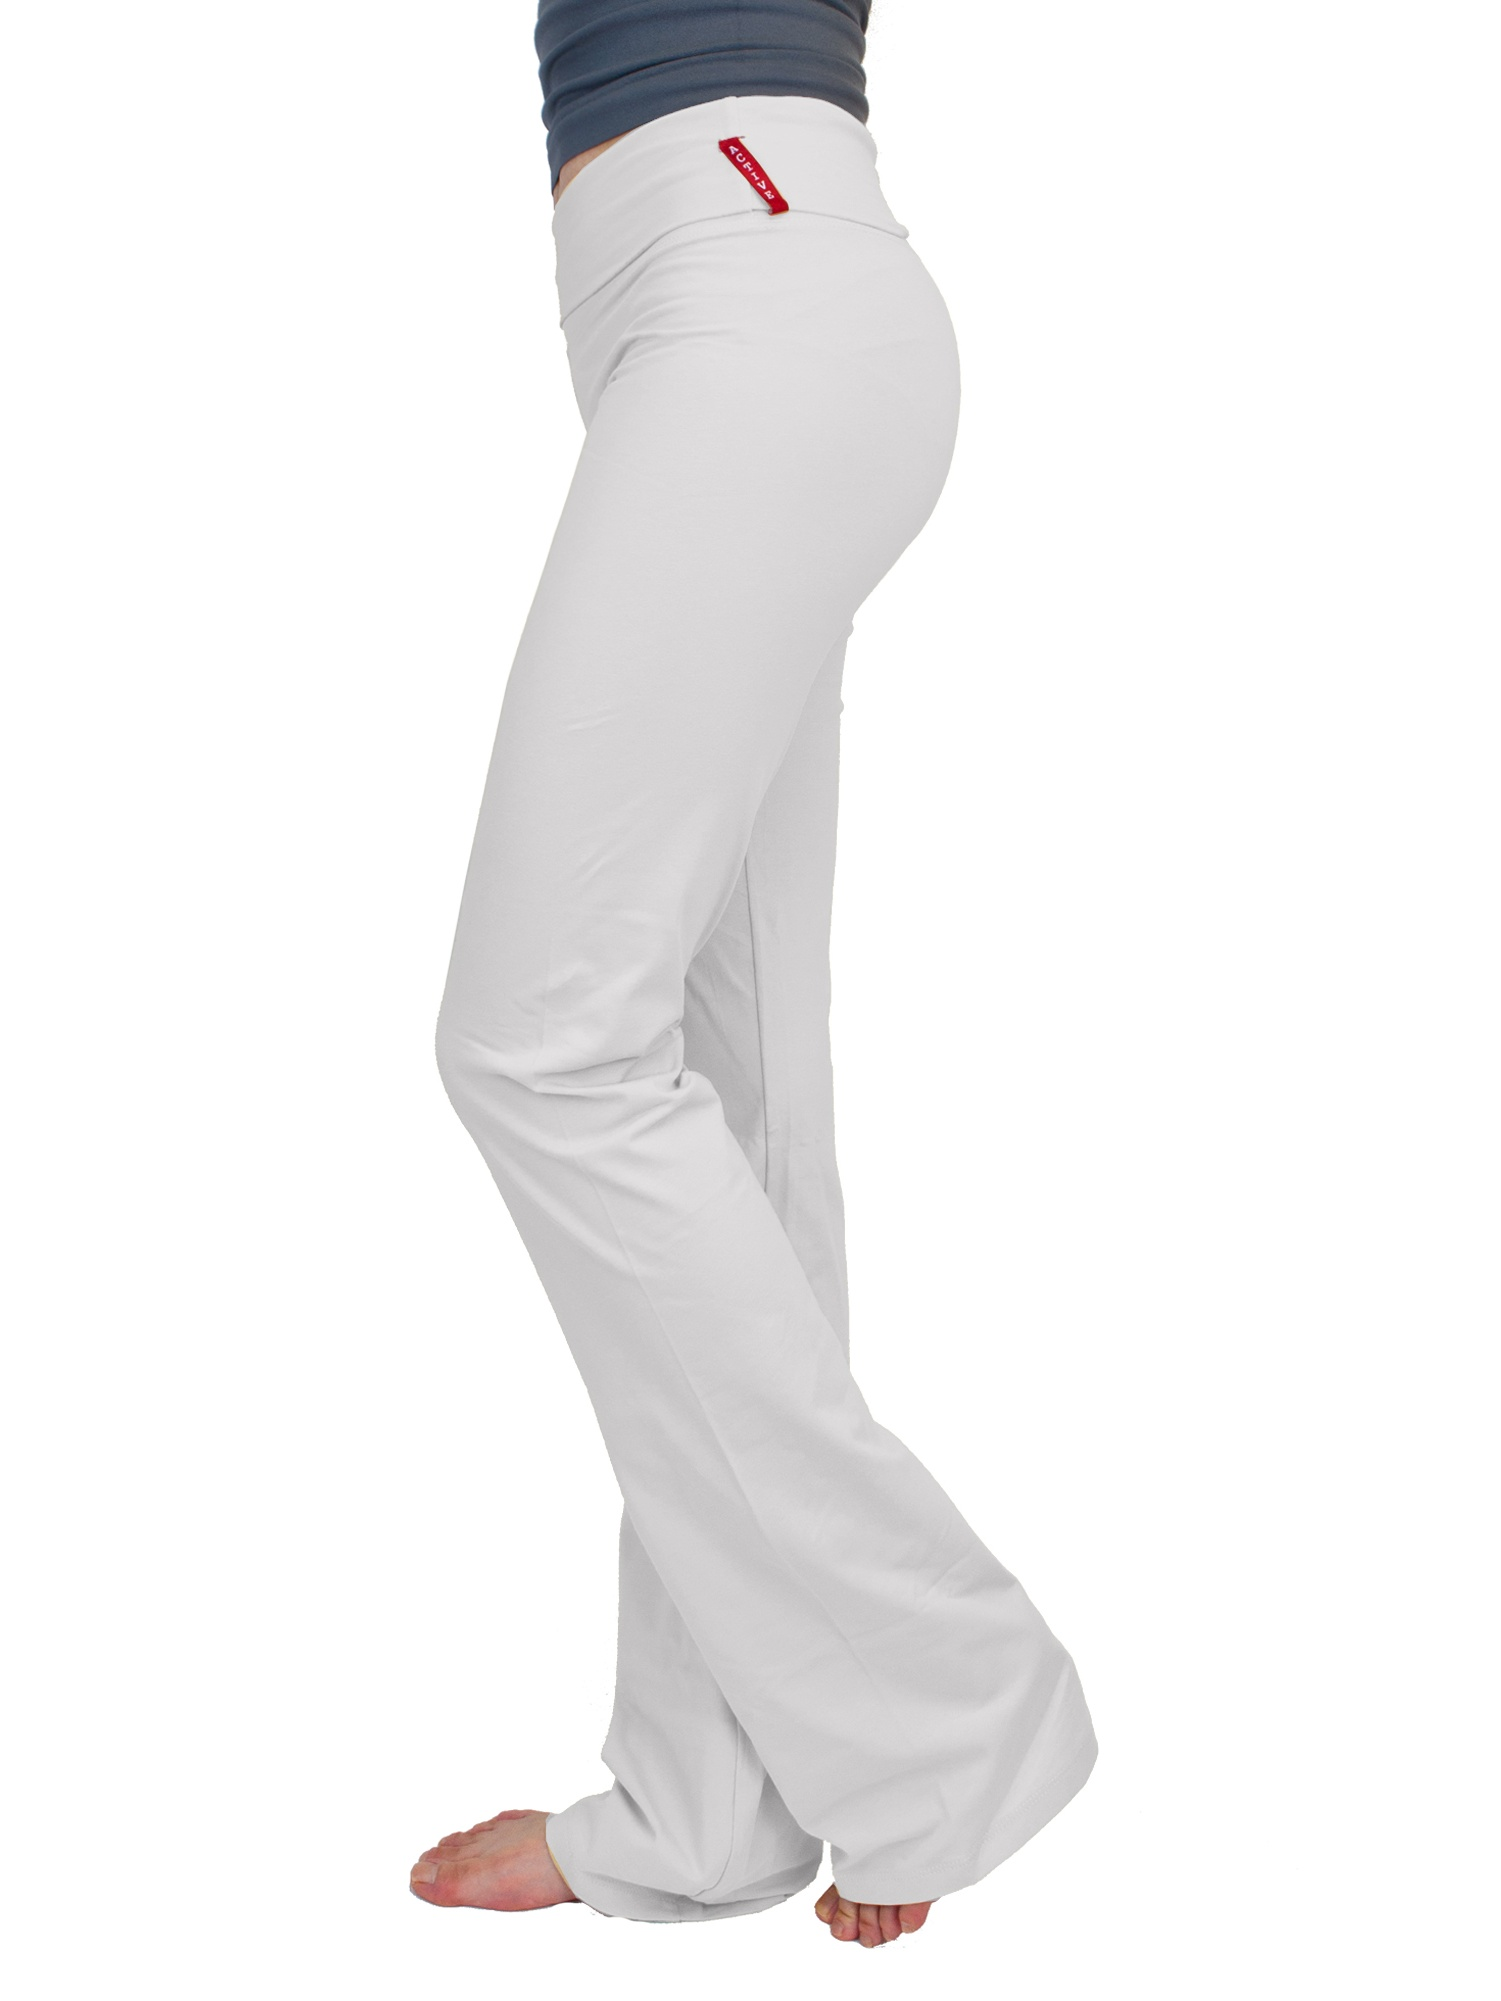 Women's New Yoga Athletic Foldover Stretch Comfy Lounge Flare Fit Pants-Plus Size Available (FAST & FREE SHIPPING)